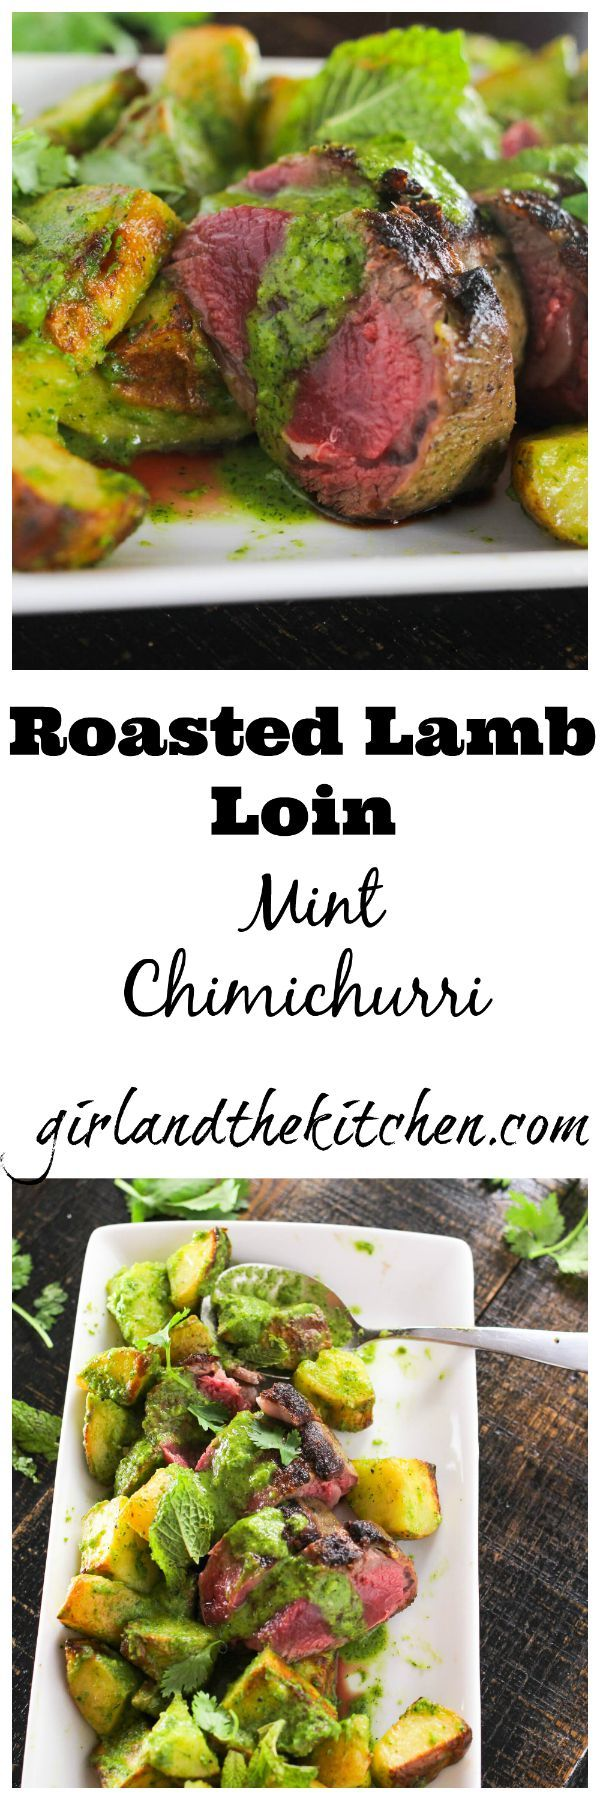 A simple and elegant one pan roasted lamb and potato recipe cooked to perfection and drizzled with an herb infused chimichurri.